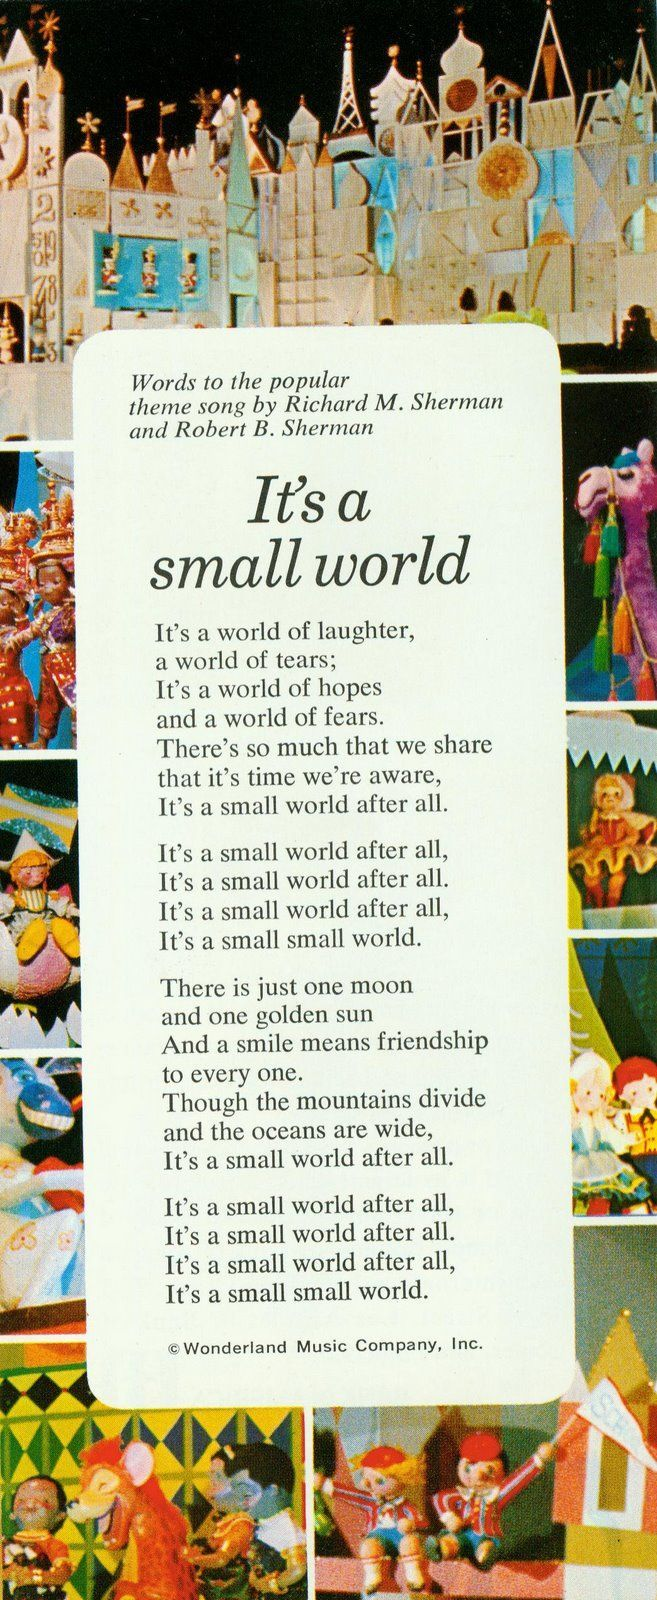 Its a small world disney world pinterest disney stuff disney just wanted to say its a small world is my all time favourite ride at the parks i love the song too no matter what everyone else says haha publicscrutiny Images